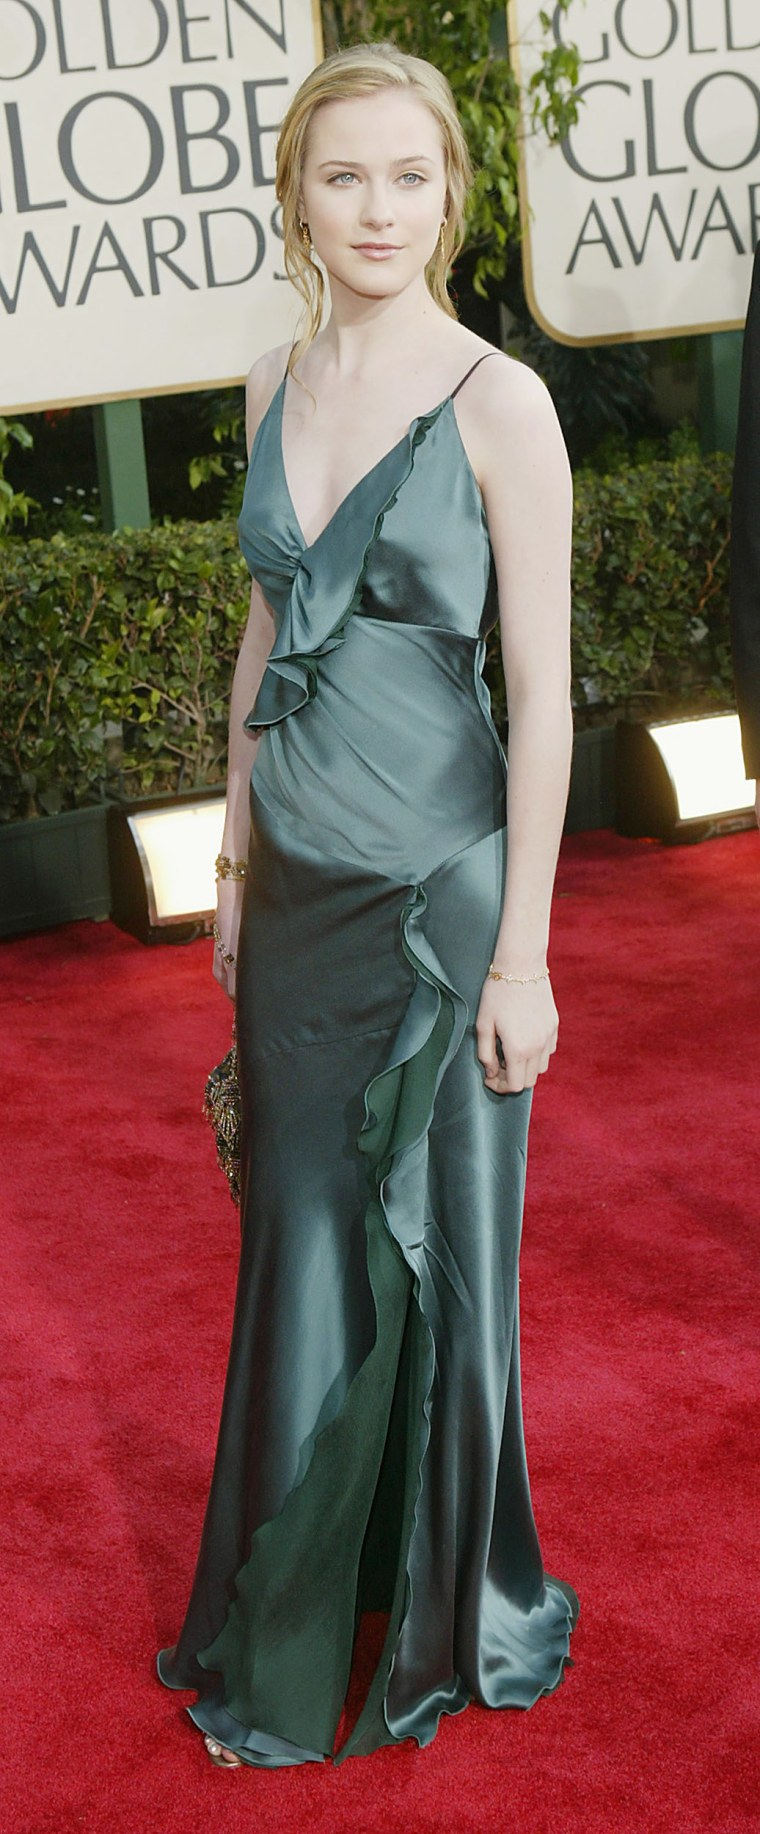 Actress Evan Rachel Wood attends the 61st Annual Golden Globe Awards at the Beverly Hilton Hotel on January 25, 2004 in Beverly Hills, California.